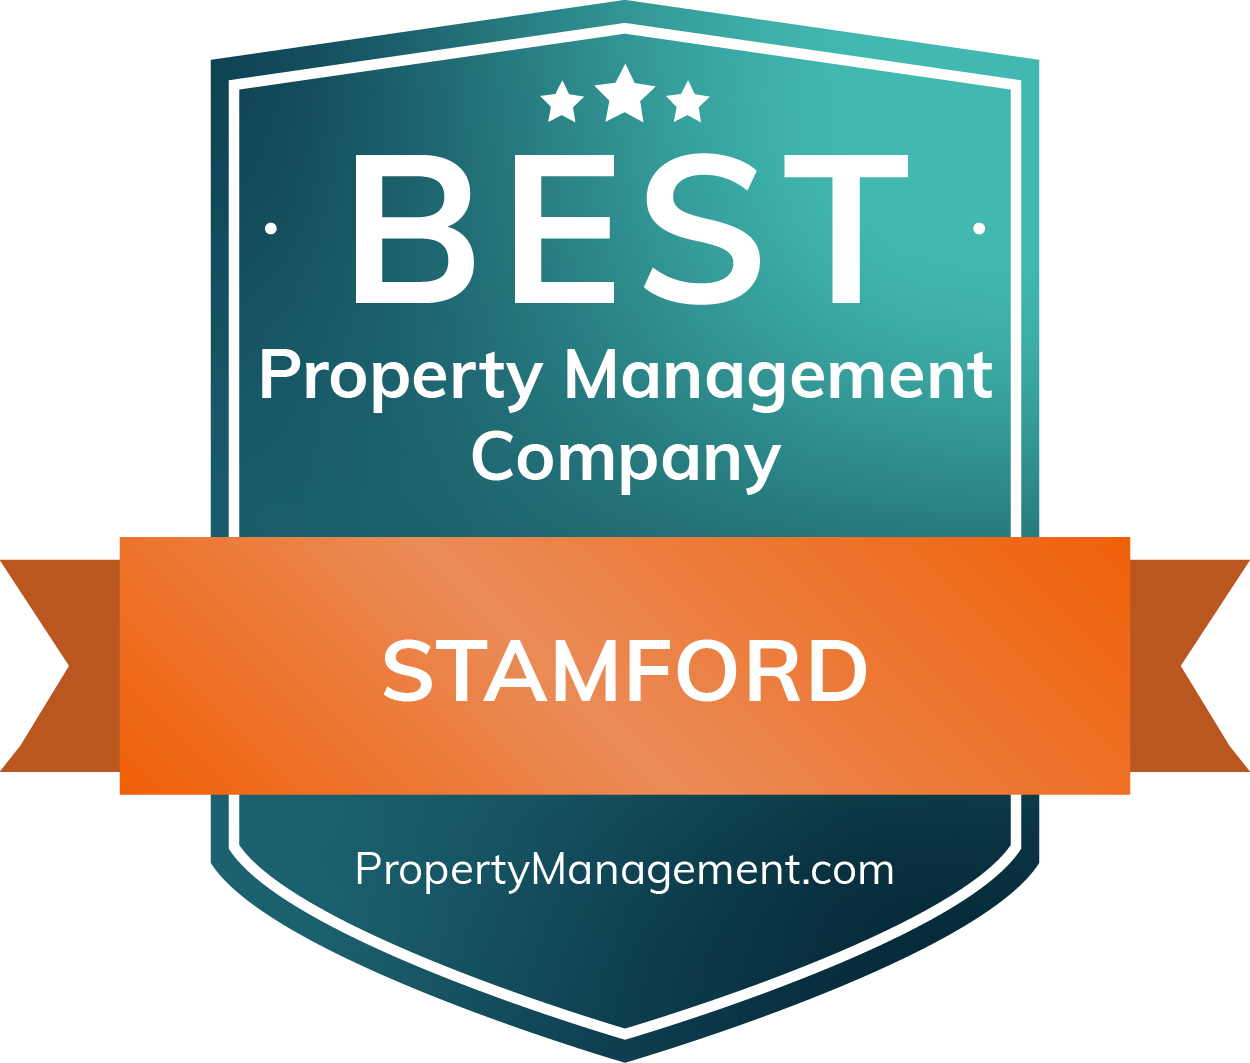 The Best Property Management in Stamford, CT